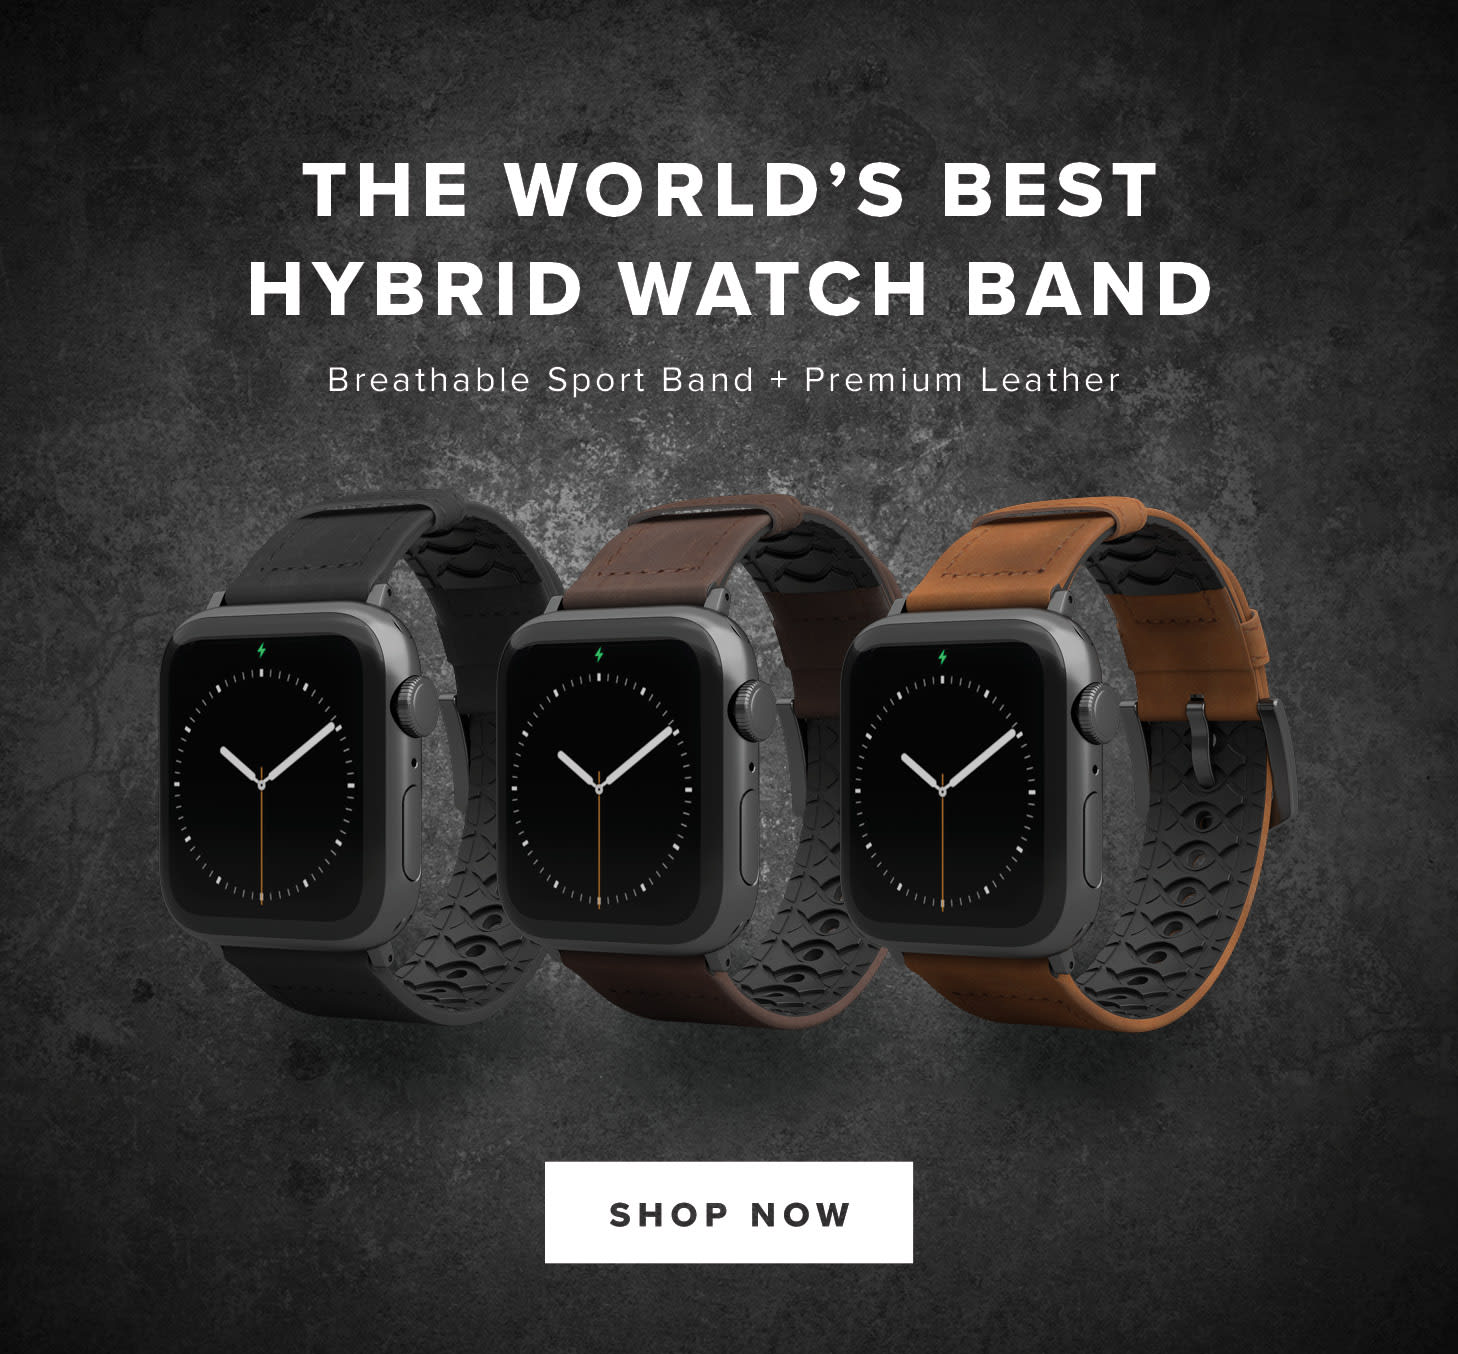 the  World's Best Hybrid Watch Band; Shop Now